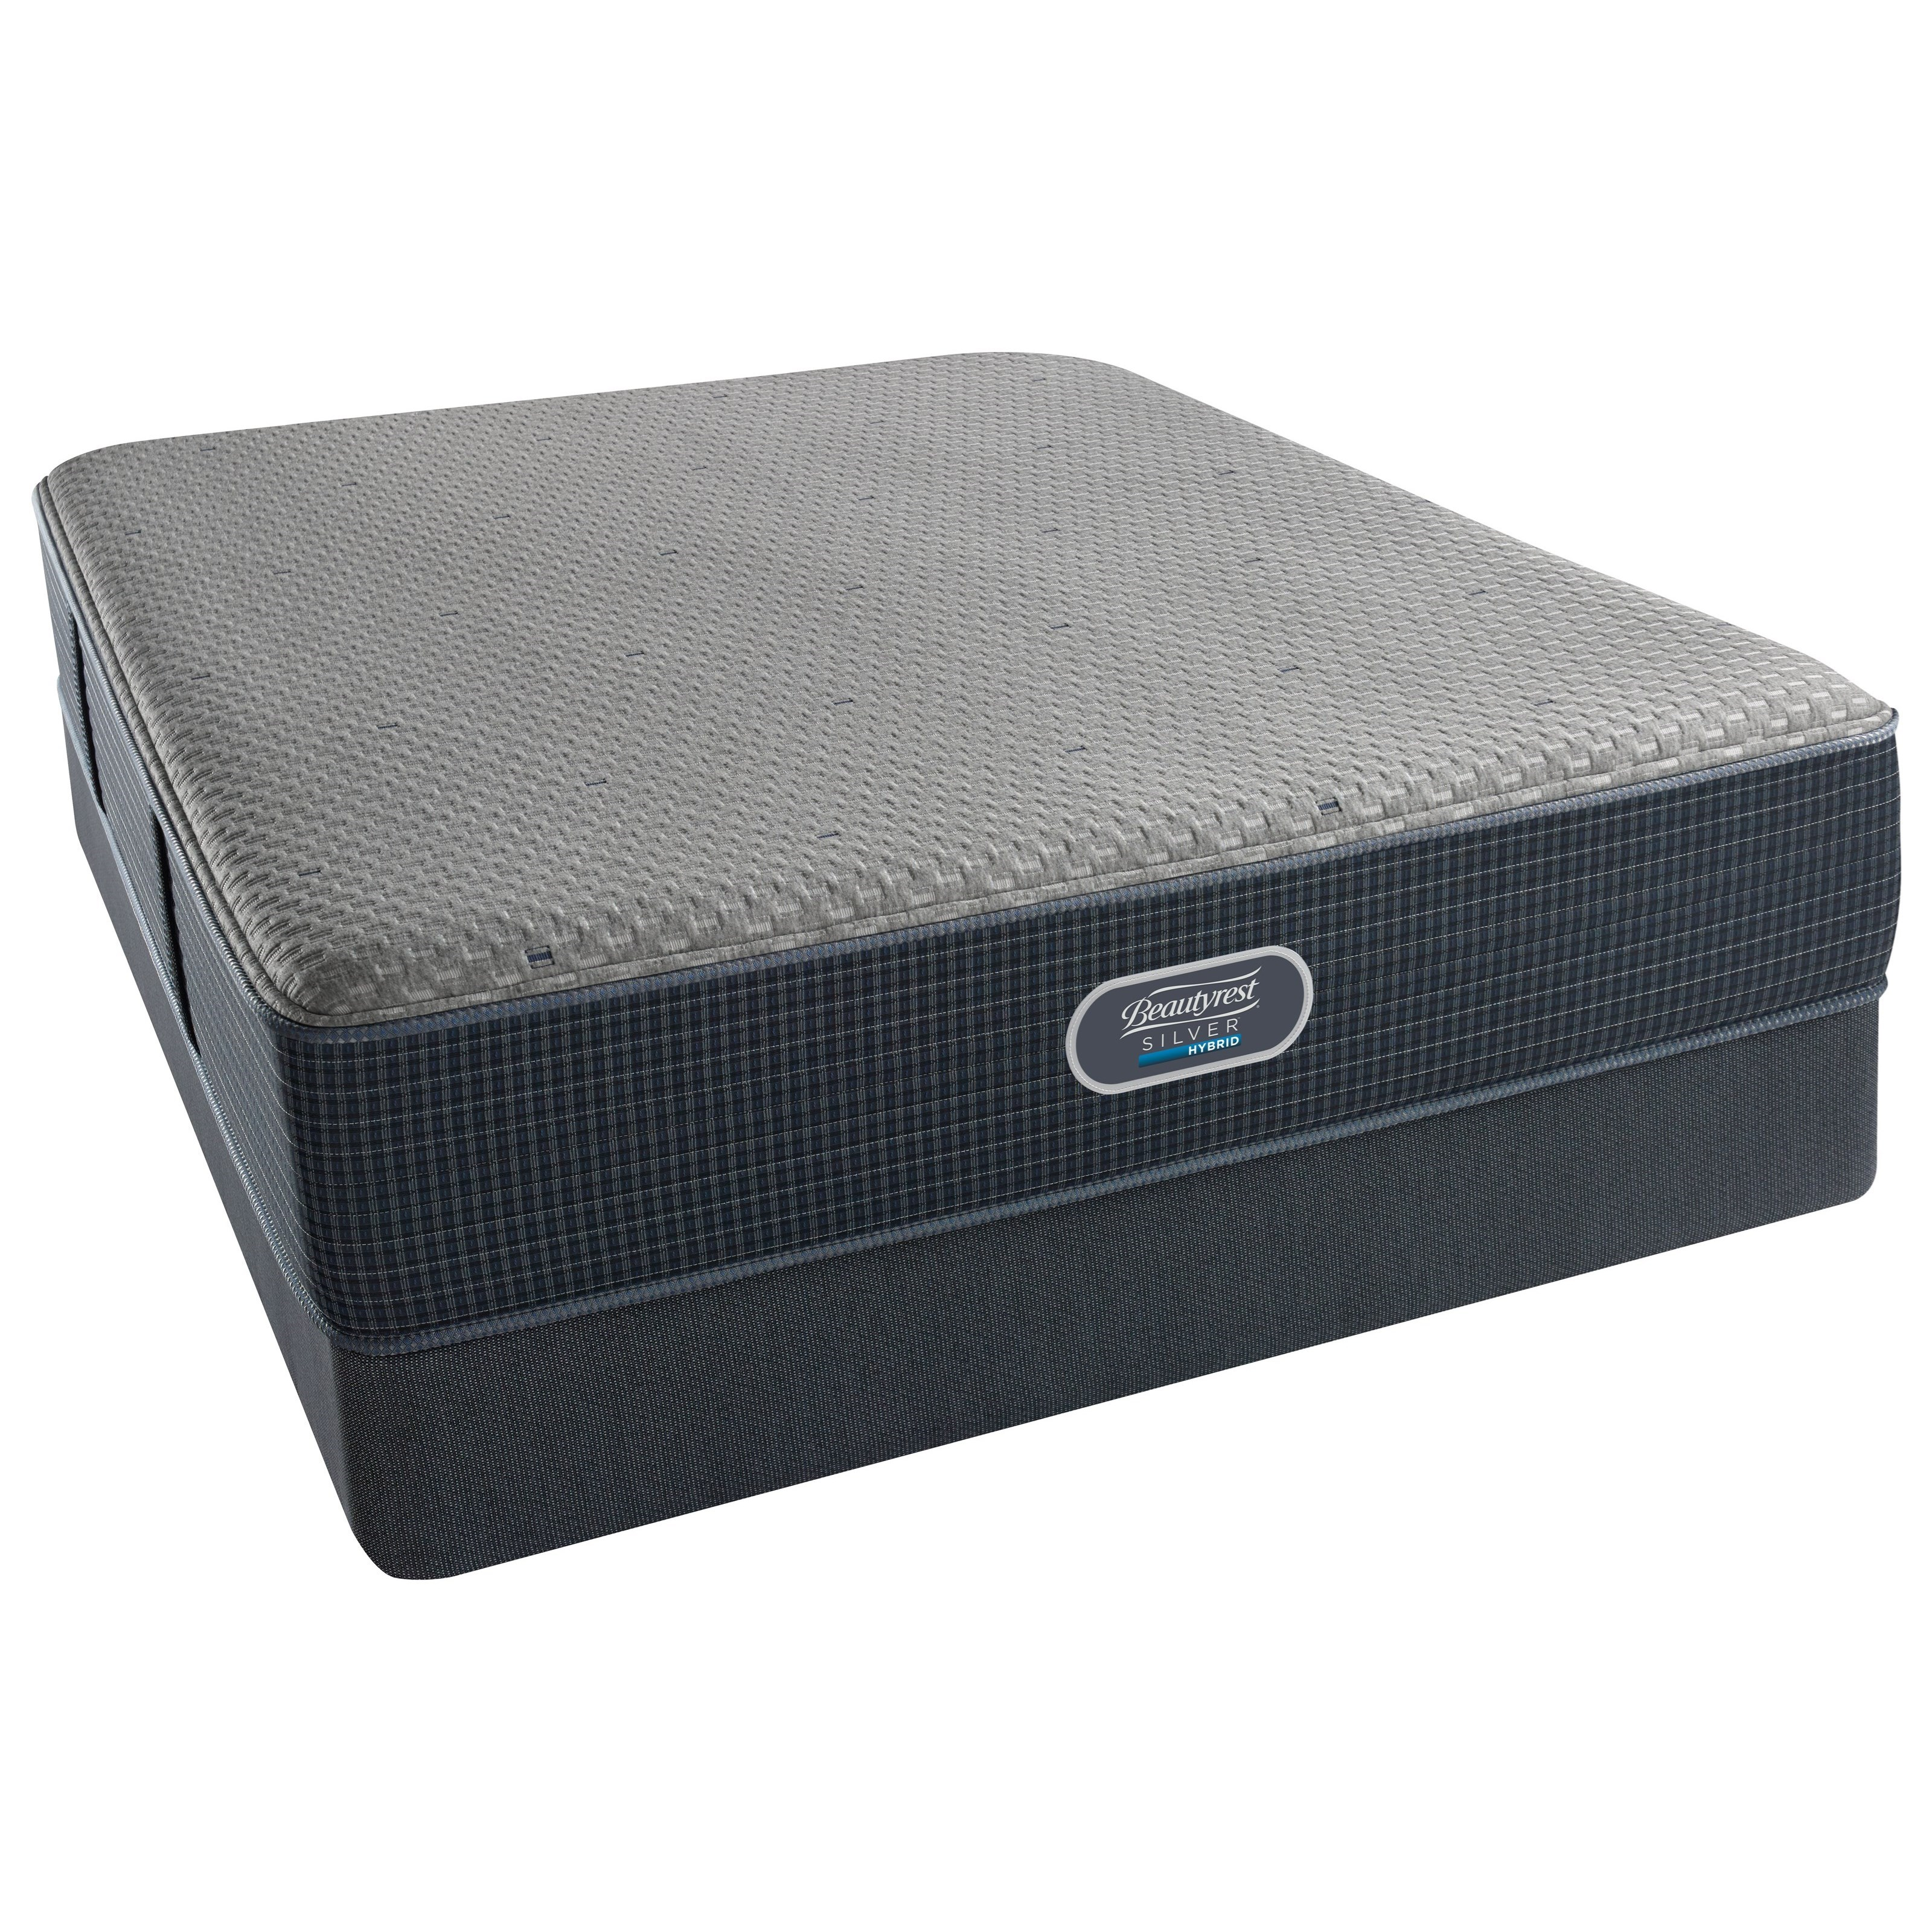 Beautyrest Silver Hybrid Beachwood Luxury Firm Beautyrest Silver Cal King Set - Item Number: 700601000-1070+2x700600254-5070